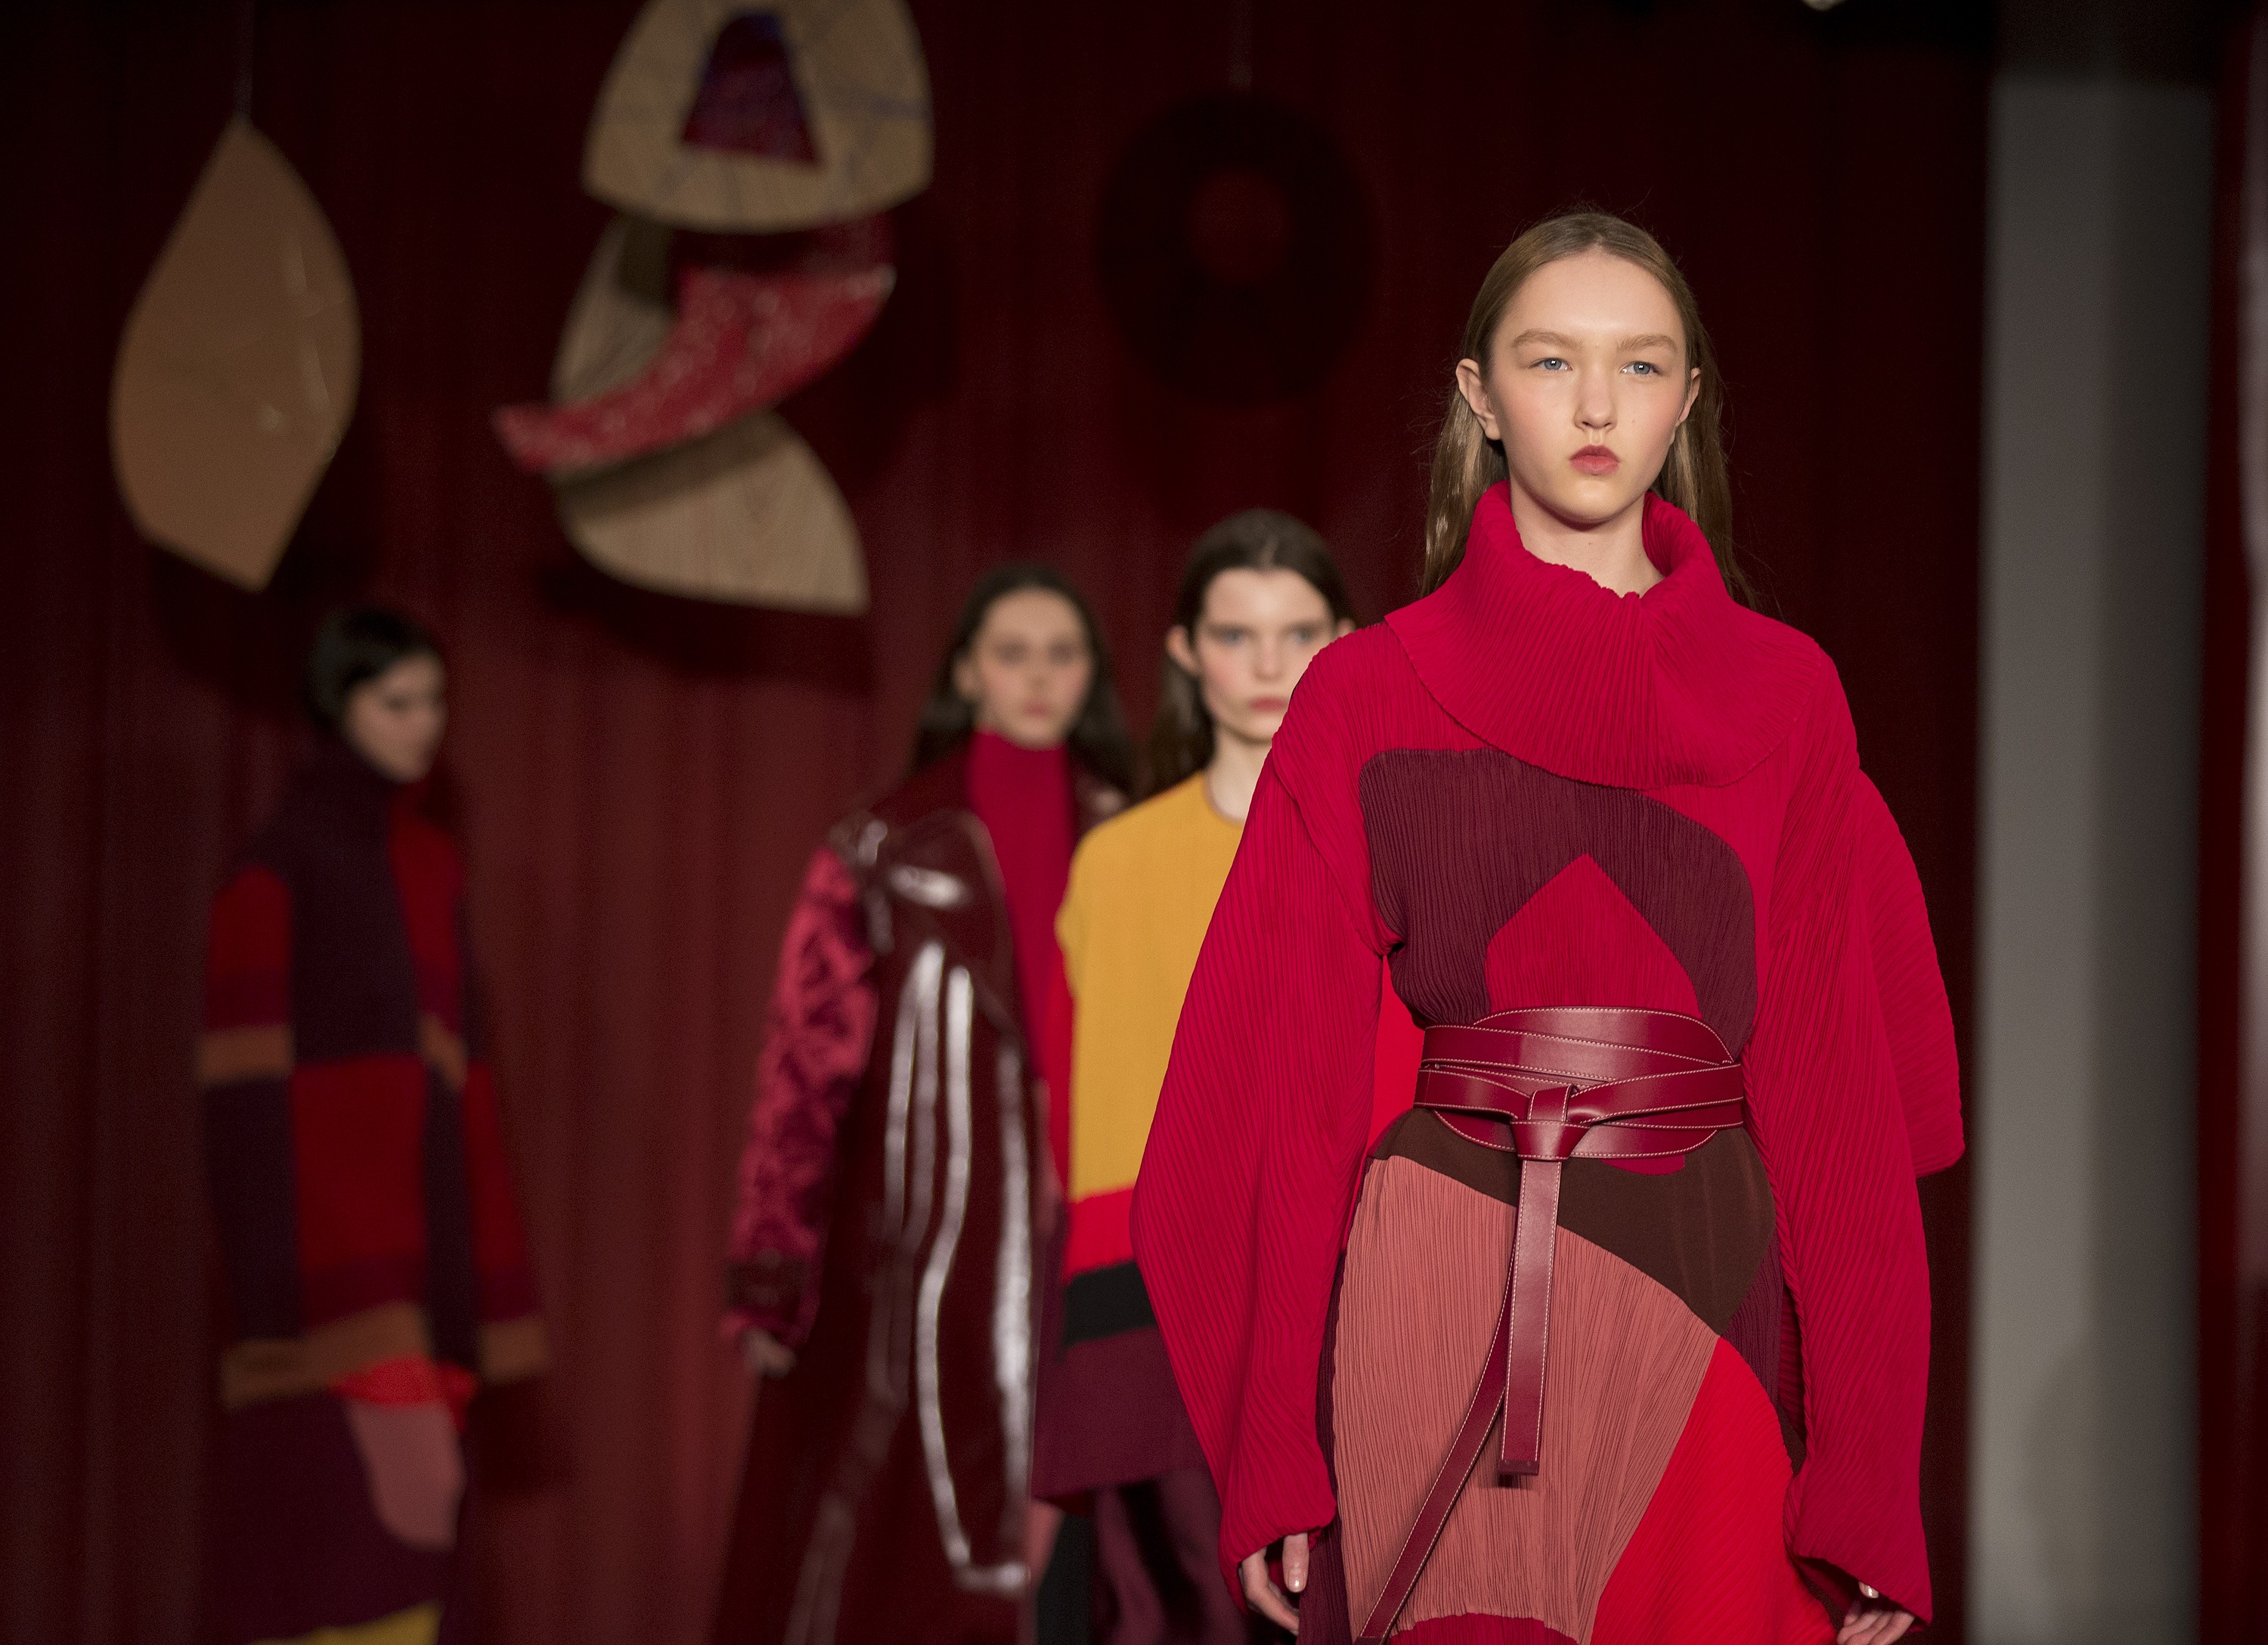 Models during the Roksanda Autumn/Winter 2017 London Fashion Week show at Surrey Street, London. PRESS ASSOCIATION. Picture date: Monday February 20, 2017